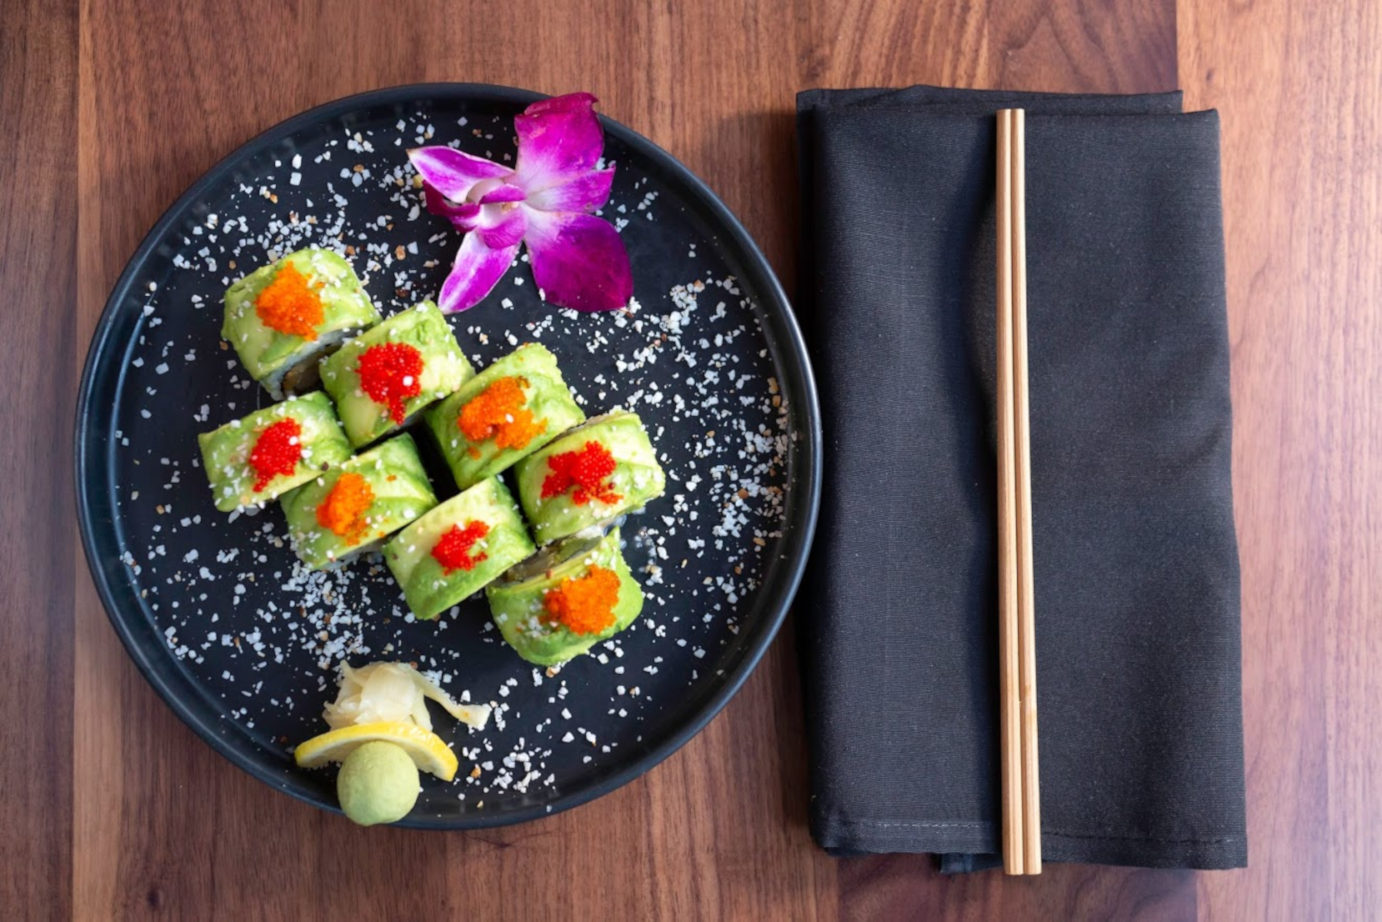 Sushi plate with a purple flower, top view